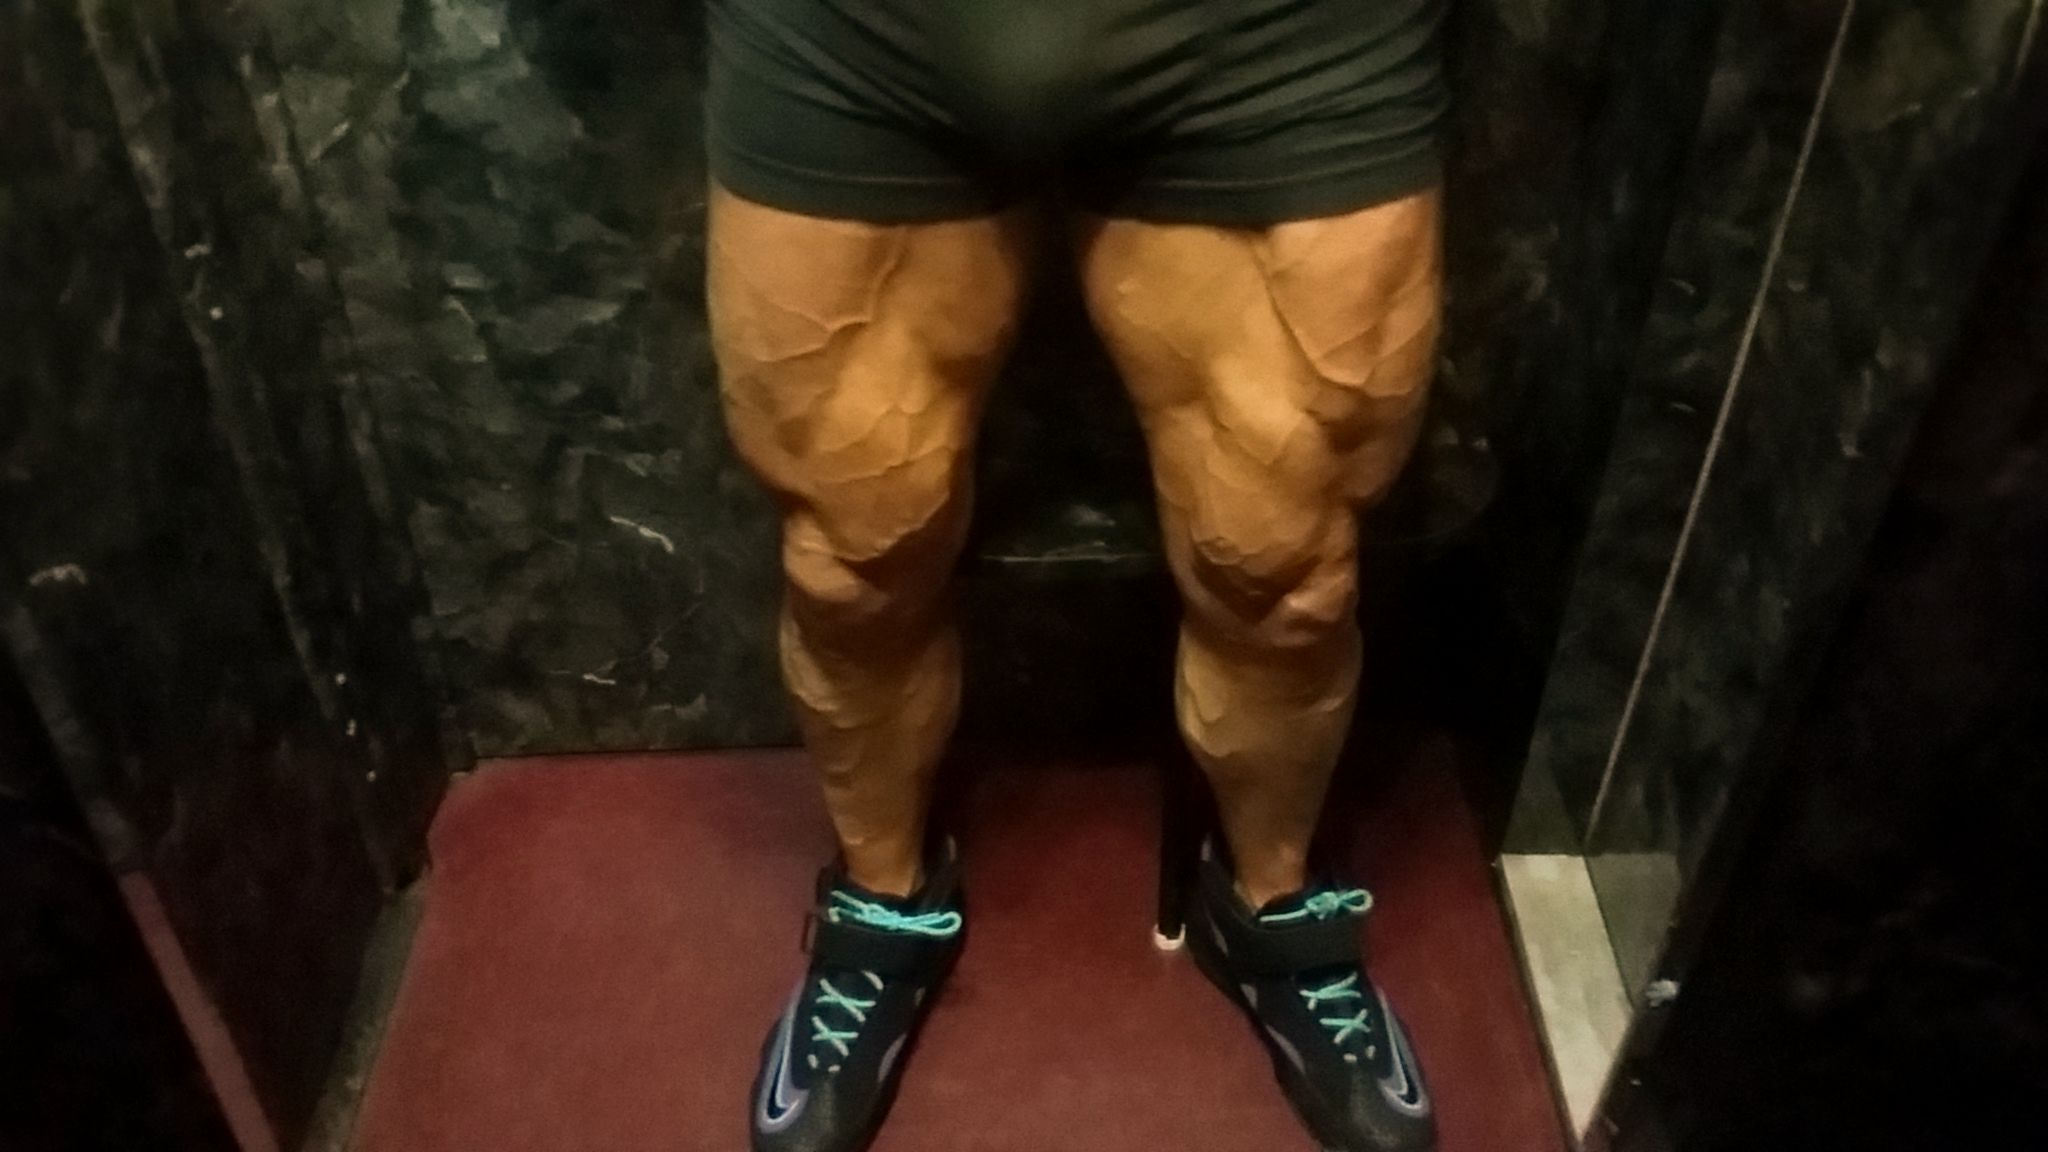 Tattooed Romance Cover Model John Joseph Quinlan 2015 Arnold Amateur Men's Physique Class D Competitor Thighs & Calves @ 1 Week Out. #JohnQuinlan